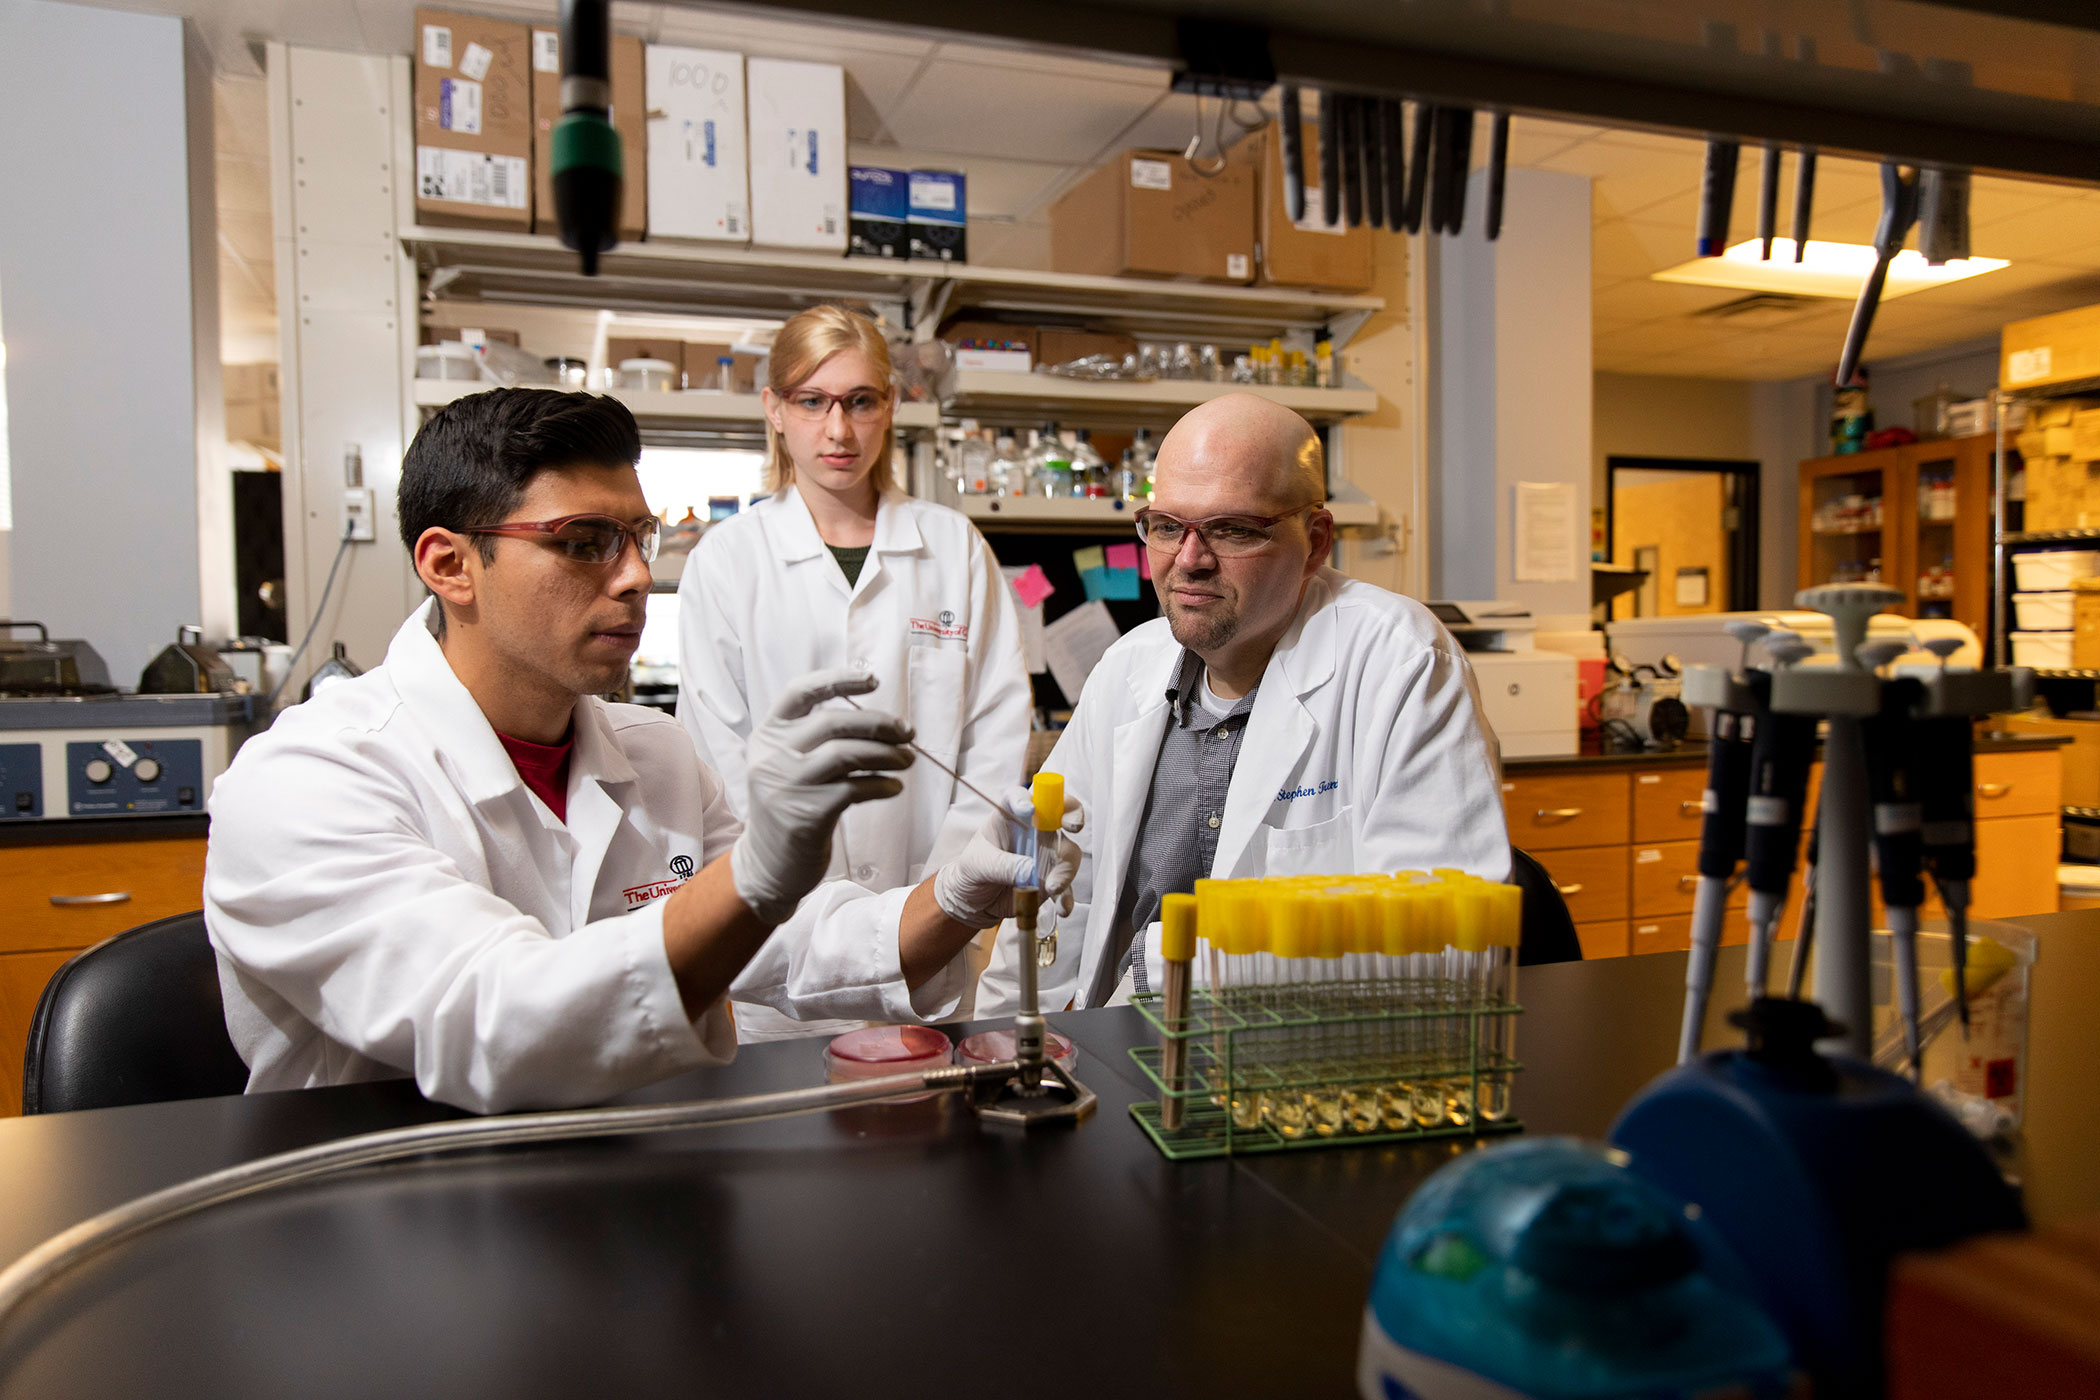 Researchers find target to fight antibiotic resistance